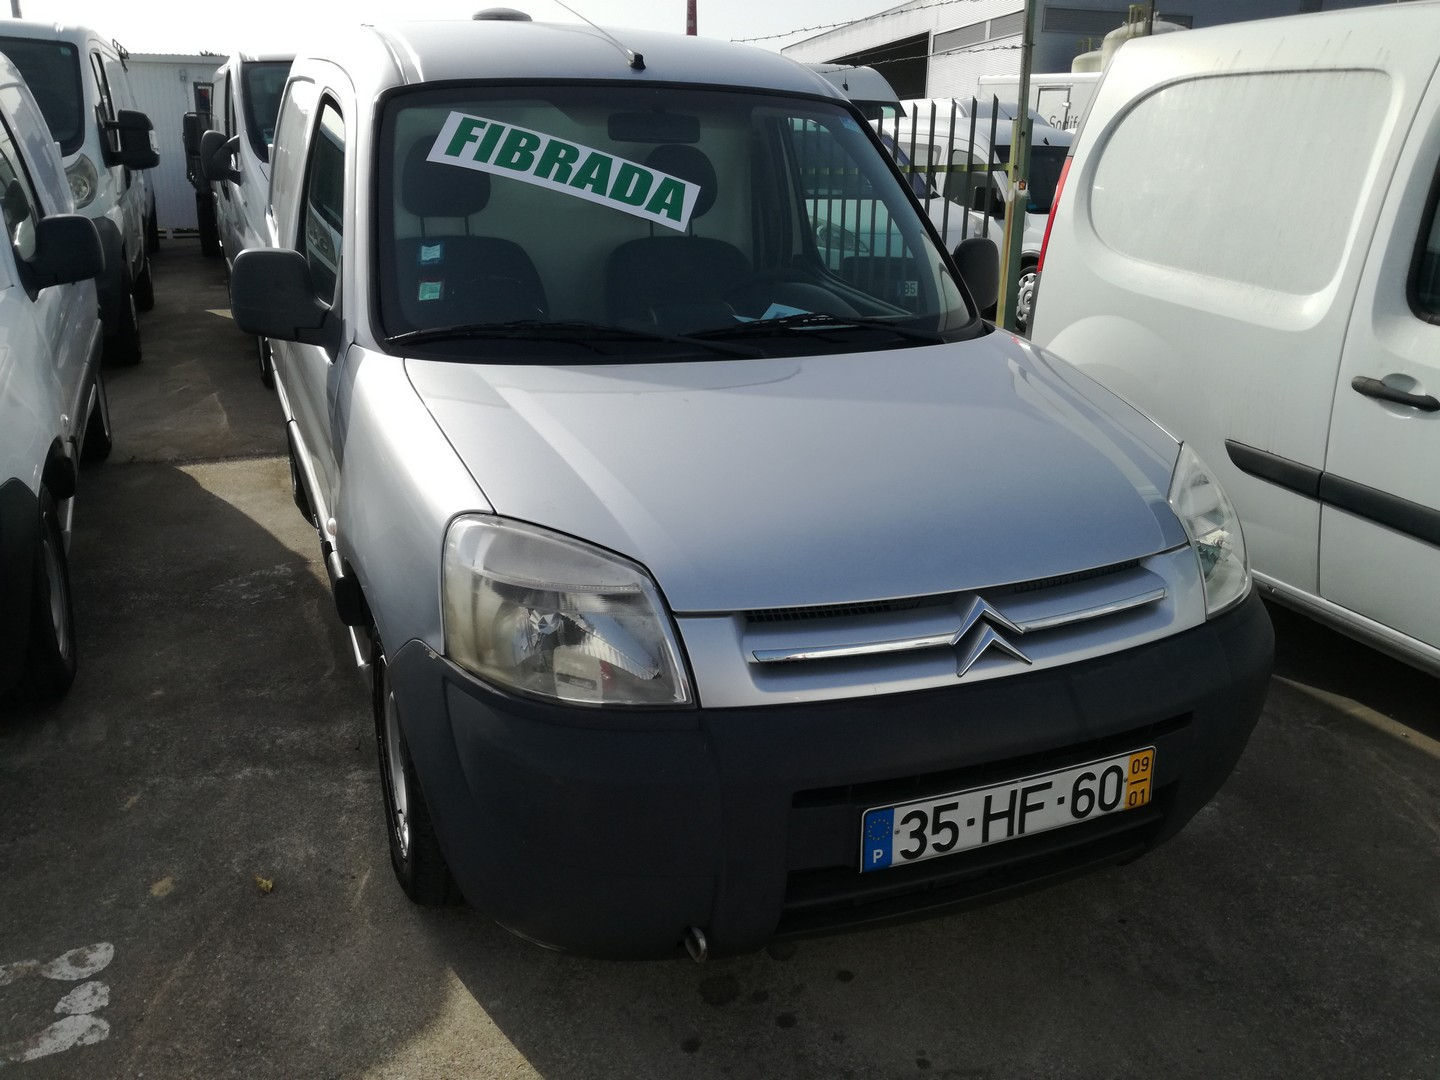 Citroen - Berlingo First 1.6HDI Fibrada